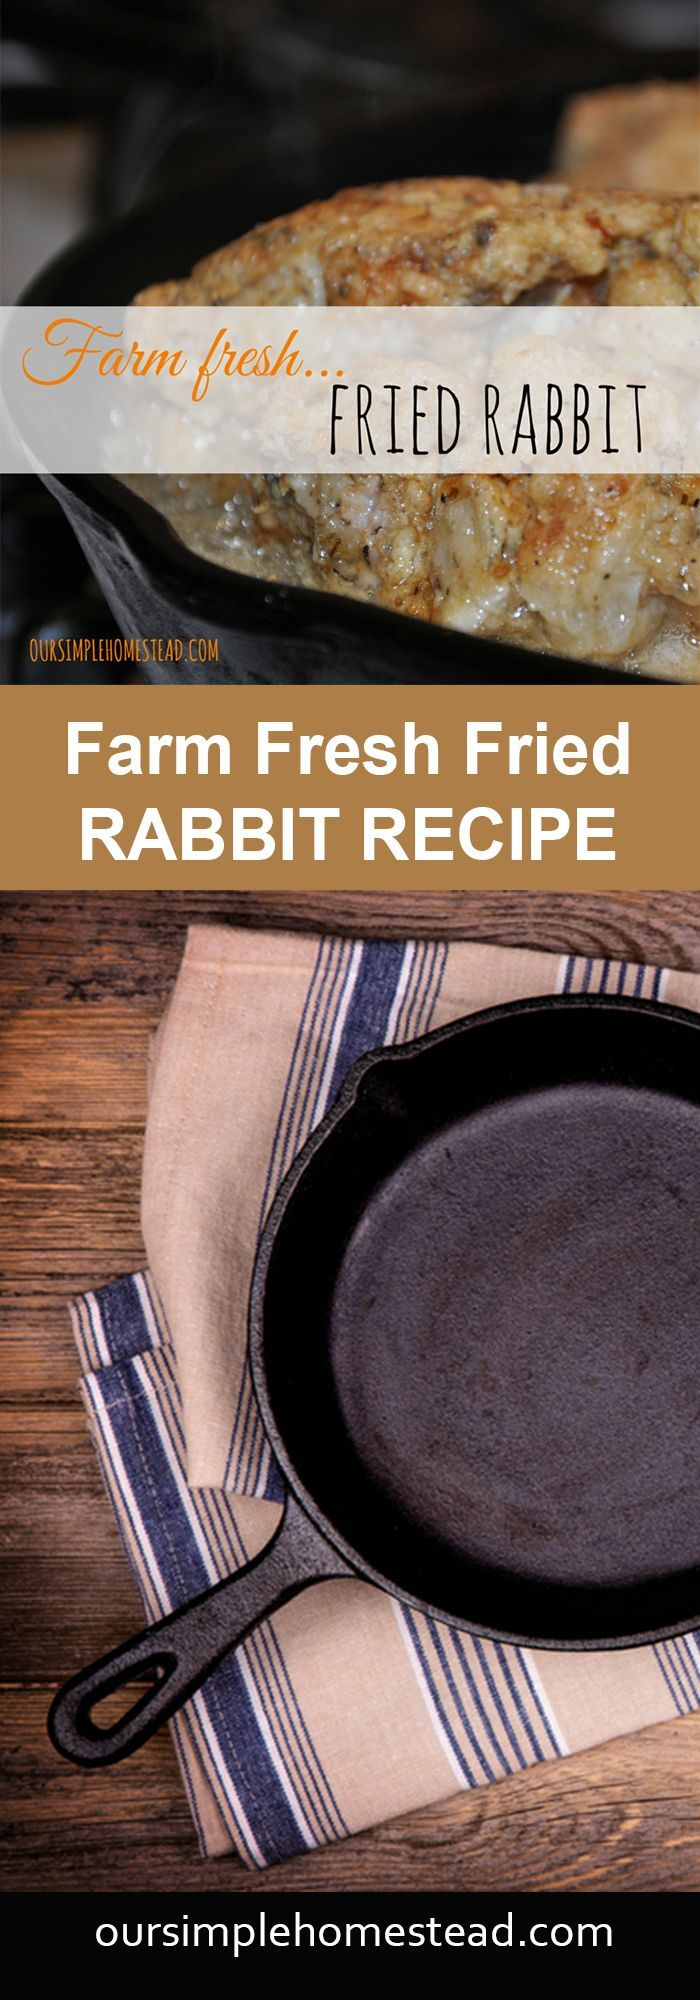 Fried Rabbit Recipe - The cycle continues…breed rabbit…raise rabbit…butcher rabbit. Raising rabbits for meat is one of the easiest and most cost effective ways to provide healthy lean meat for our family. We raise New Zealand Whites and grow three litters a year.